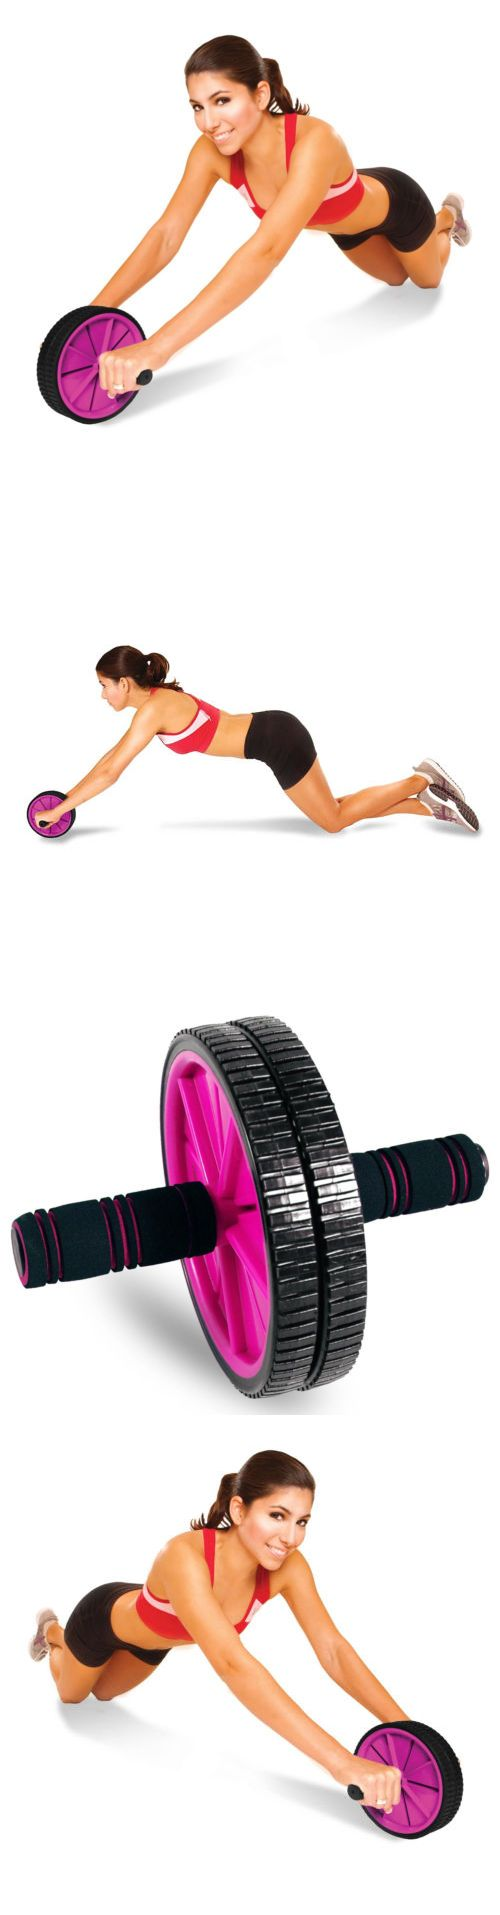 Abdominal Exercisers 15274: Abdominal Roller Toning Exercise Wheel Body Muscle Workout Fitness Training Gym -> BUY IT NOW ONLY: $38.64 on eBay!